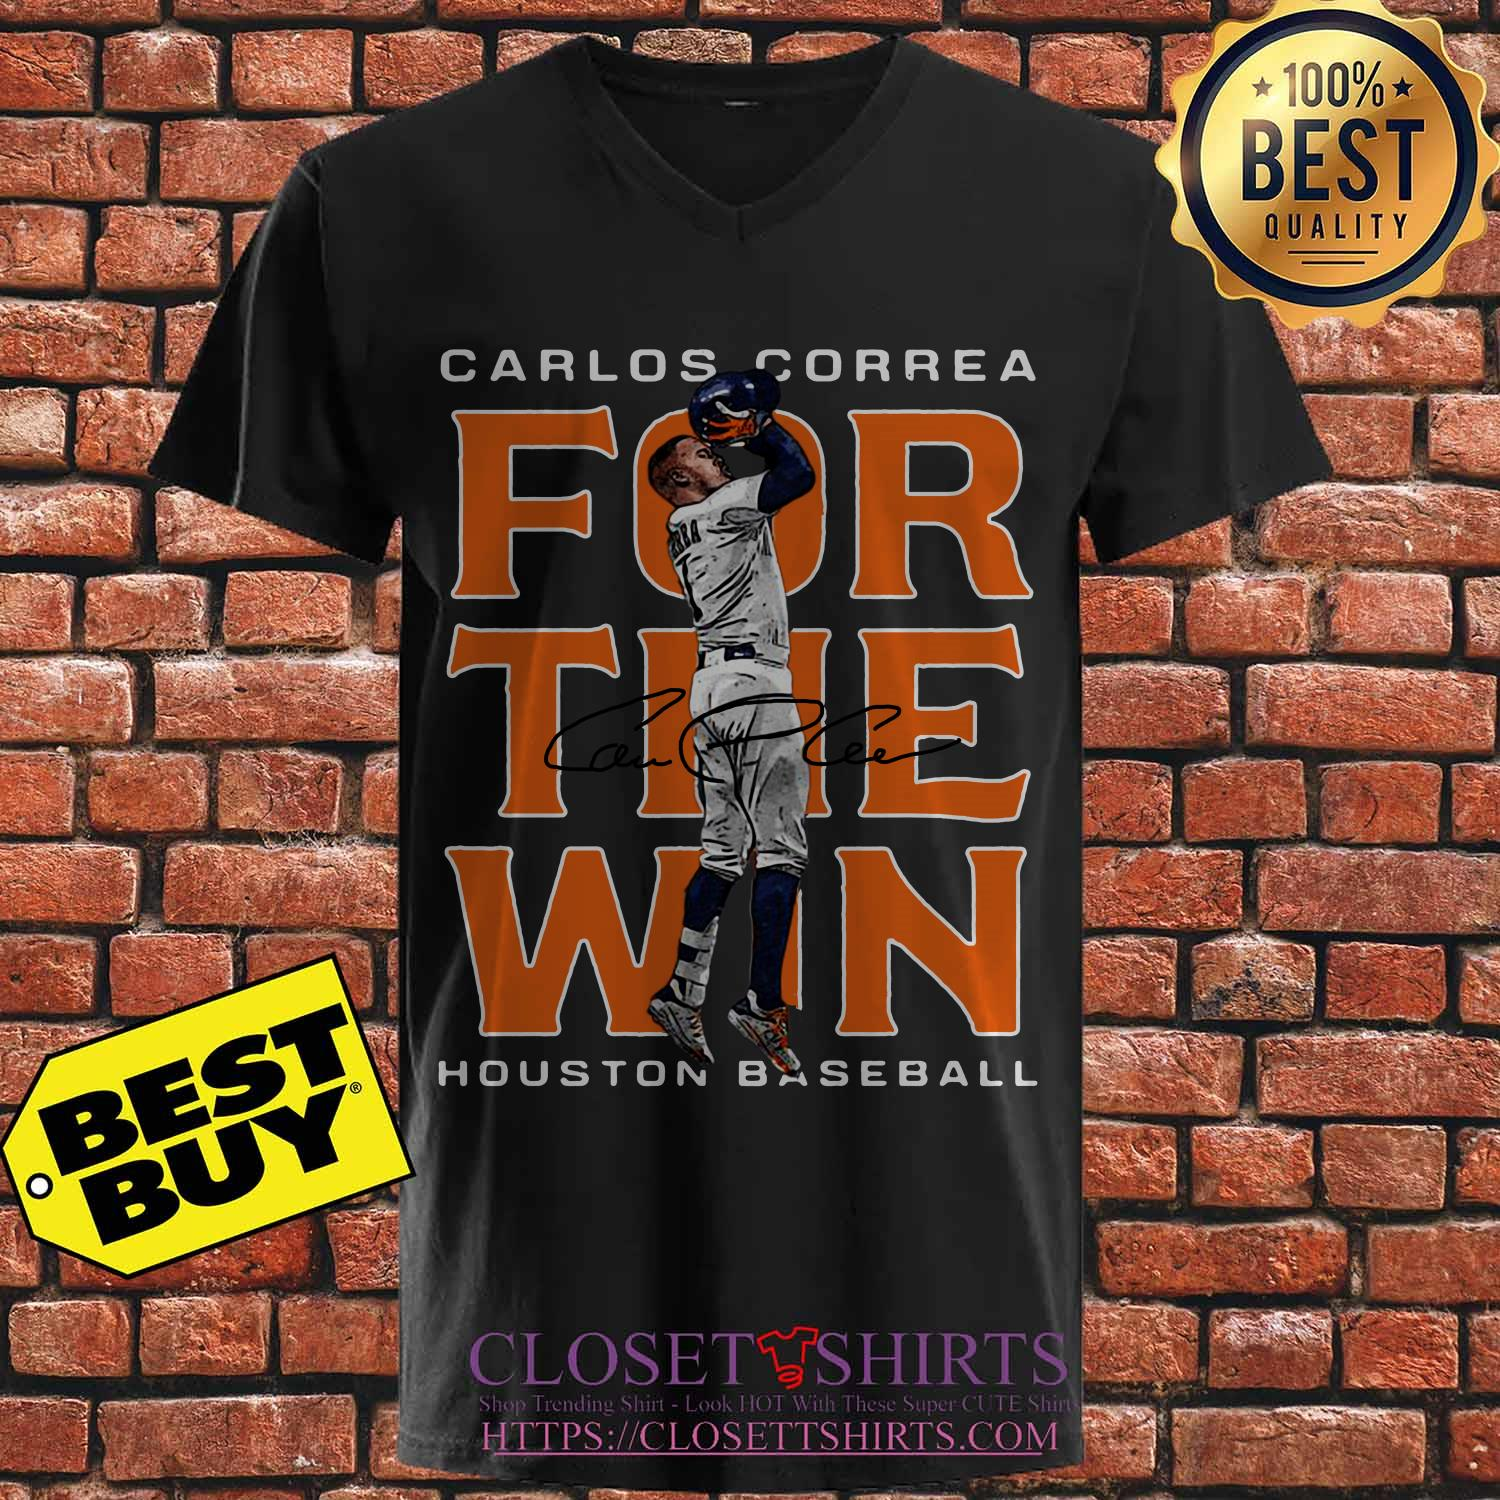 Carlos Correa Houston Astros Baseball Signature v neck